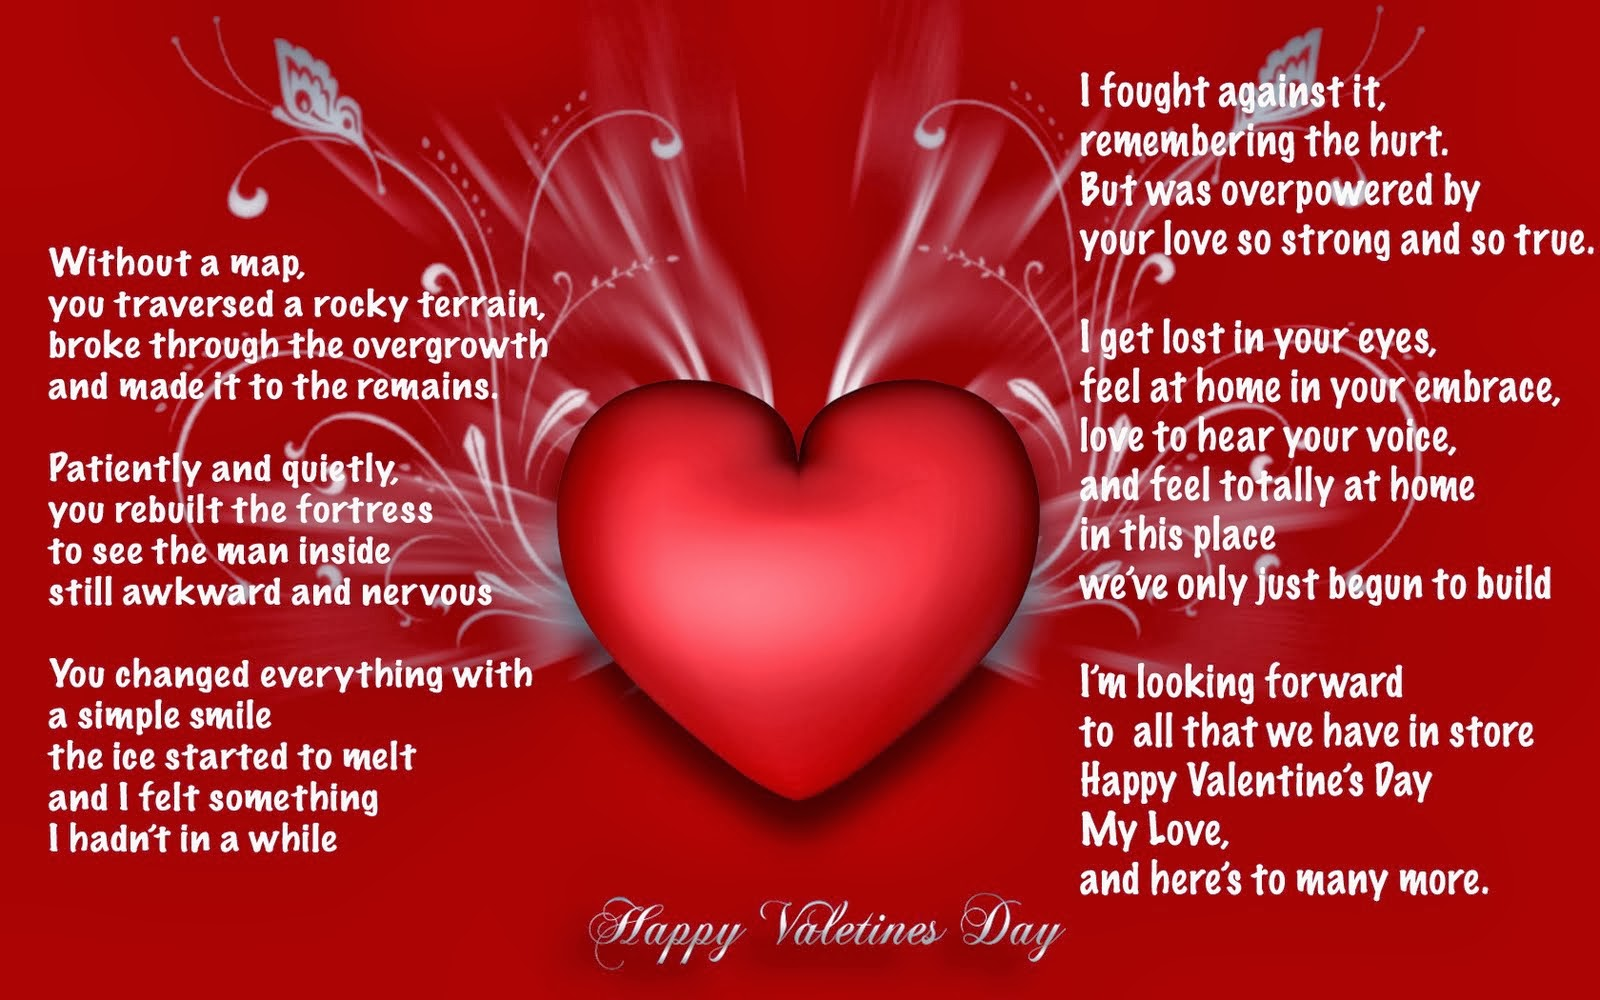 valentines day quotes hd high resolution images wallpapers pics